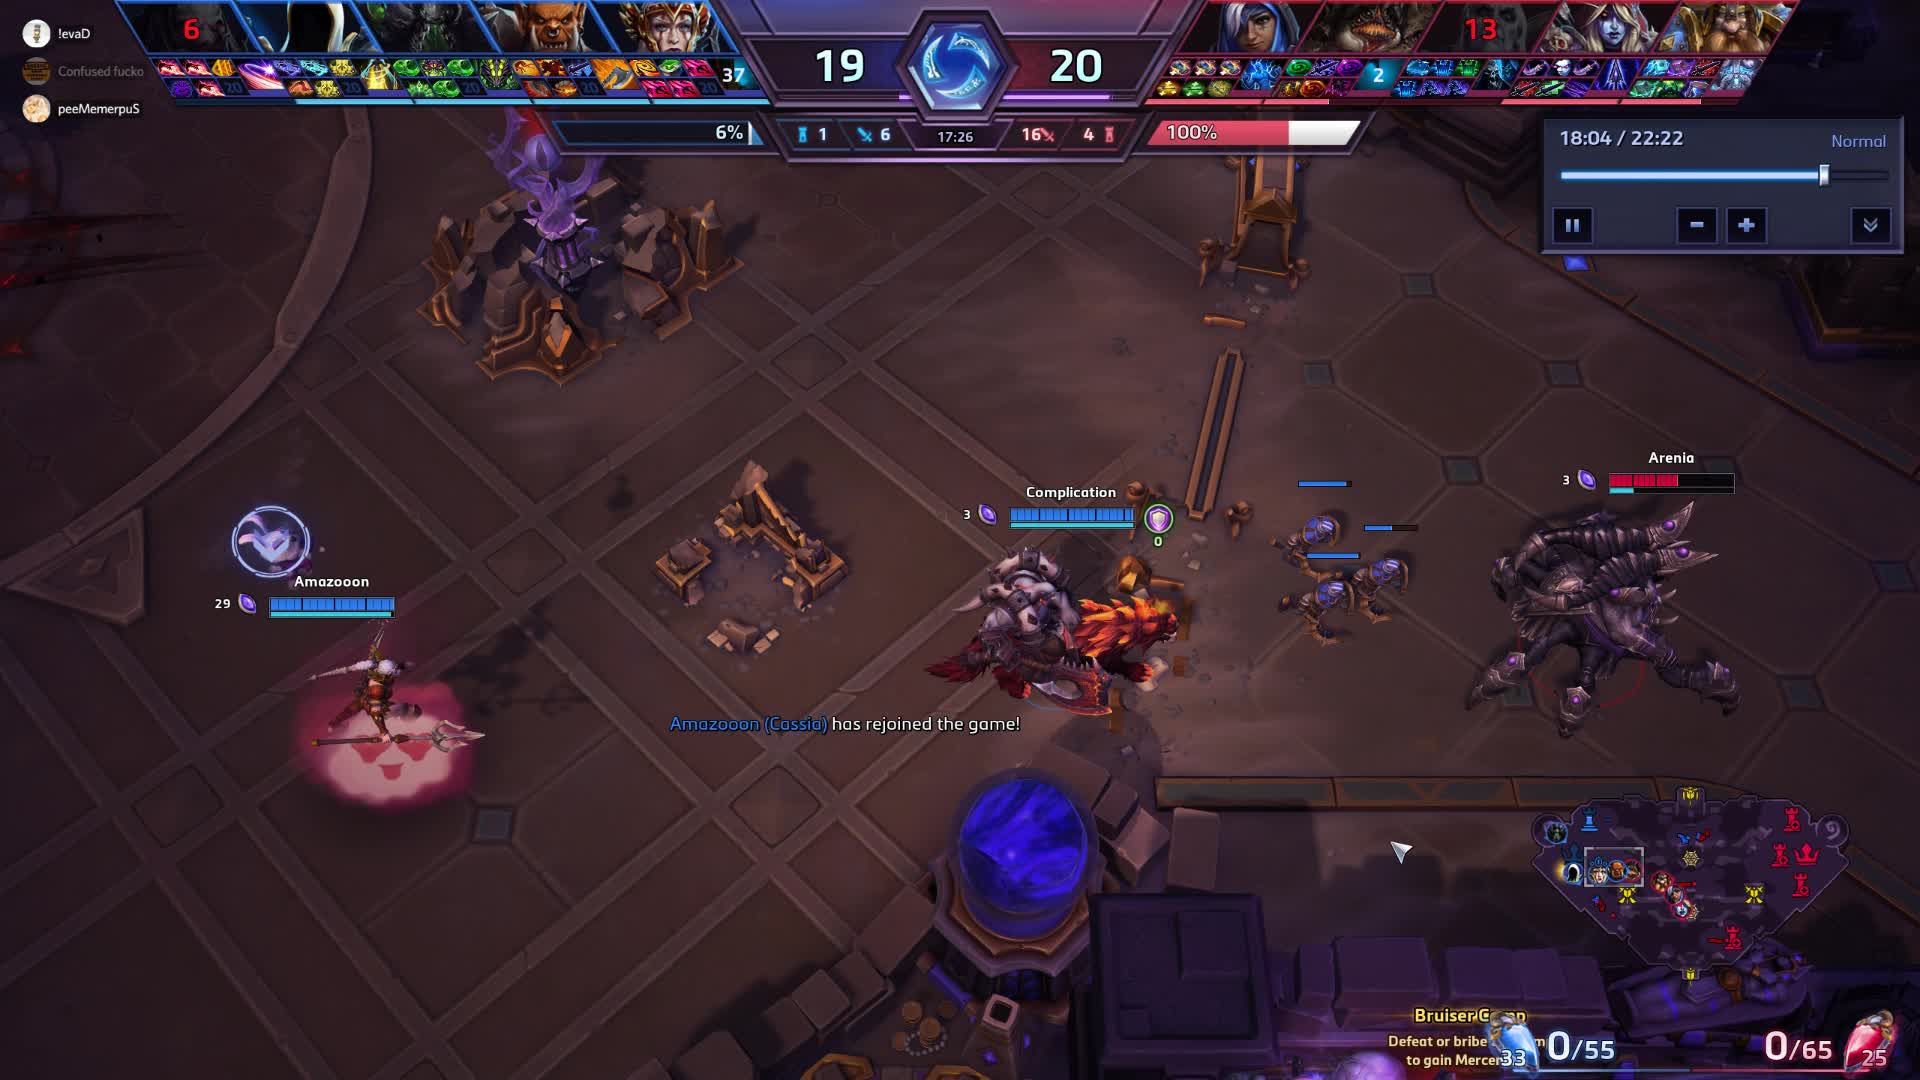 heroesofthestorm, Heroes of the Storm 03.21.2019 - 01.30.17.02 GIFs